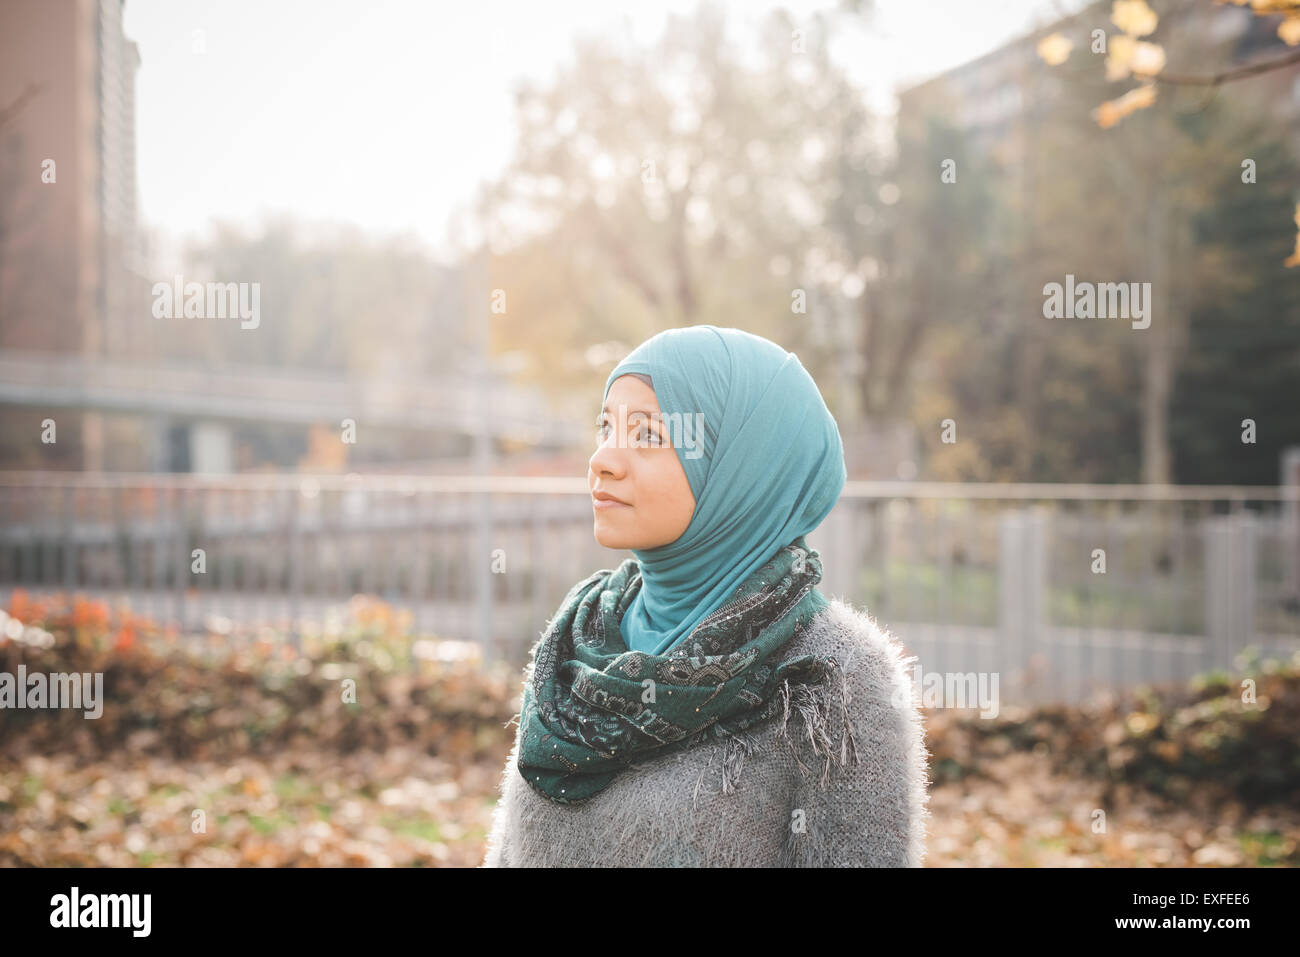 Portrait of young woman wearing hijab gazing in park - Stock Image